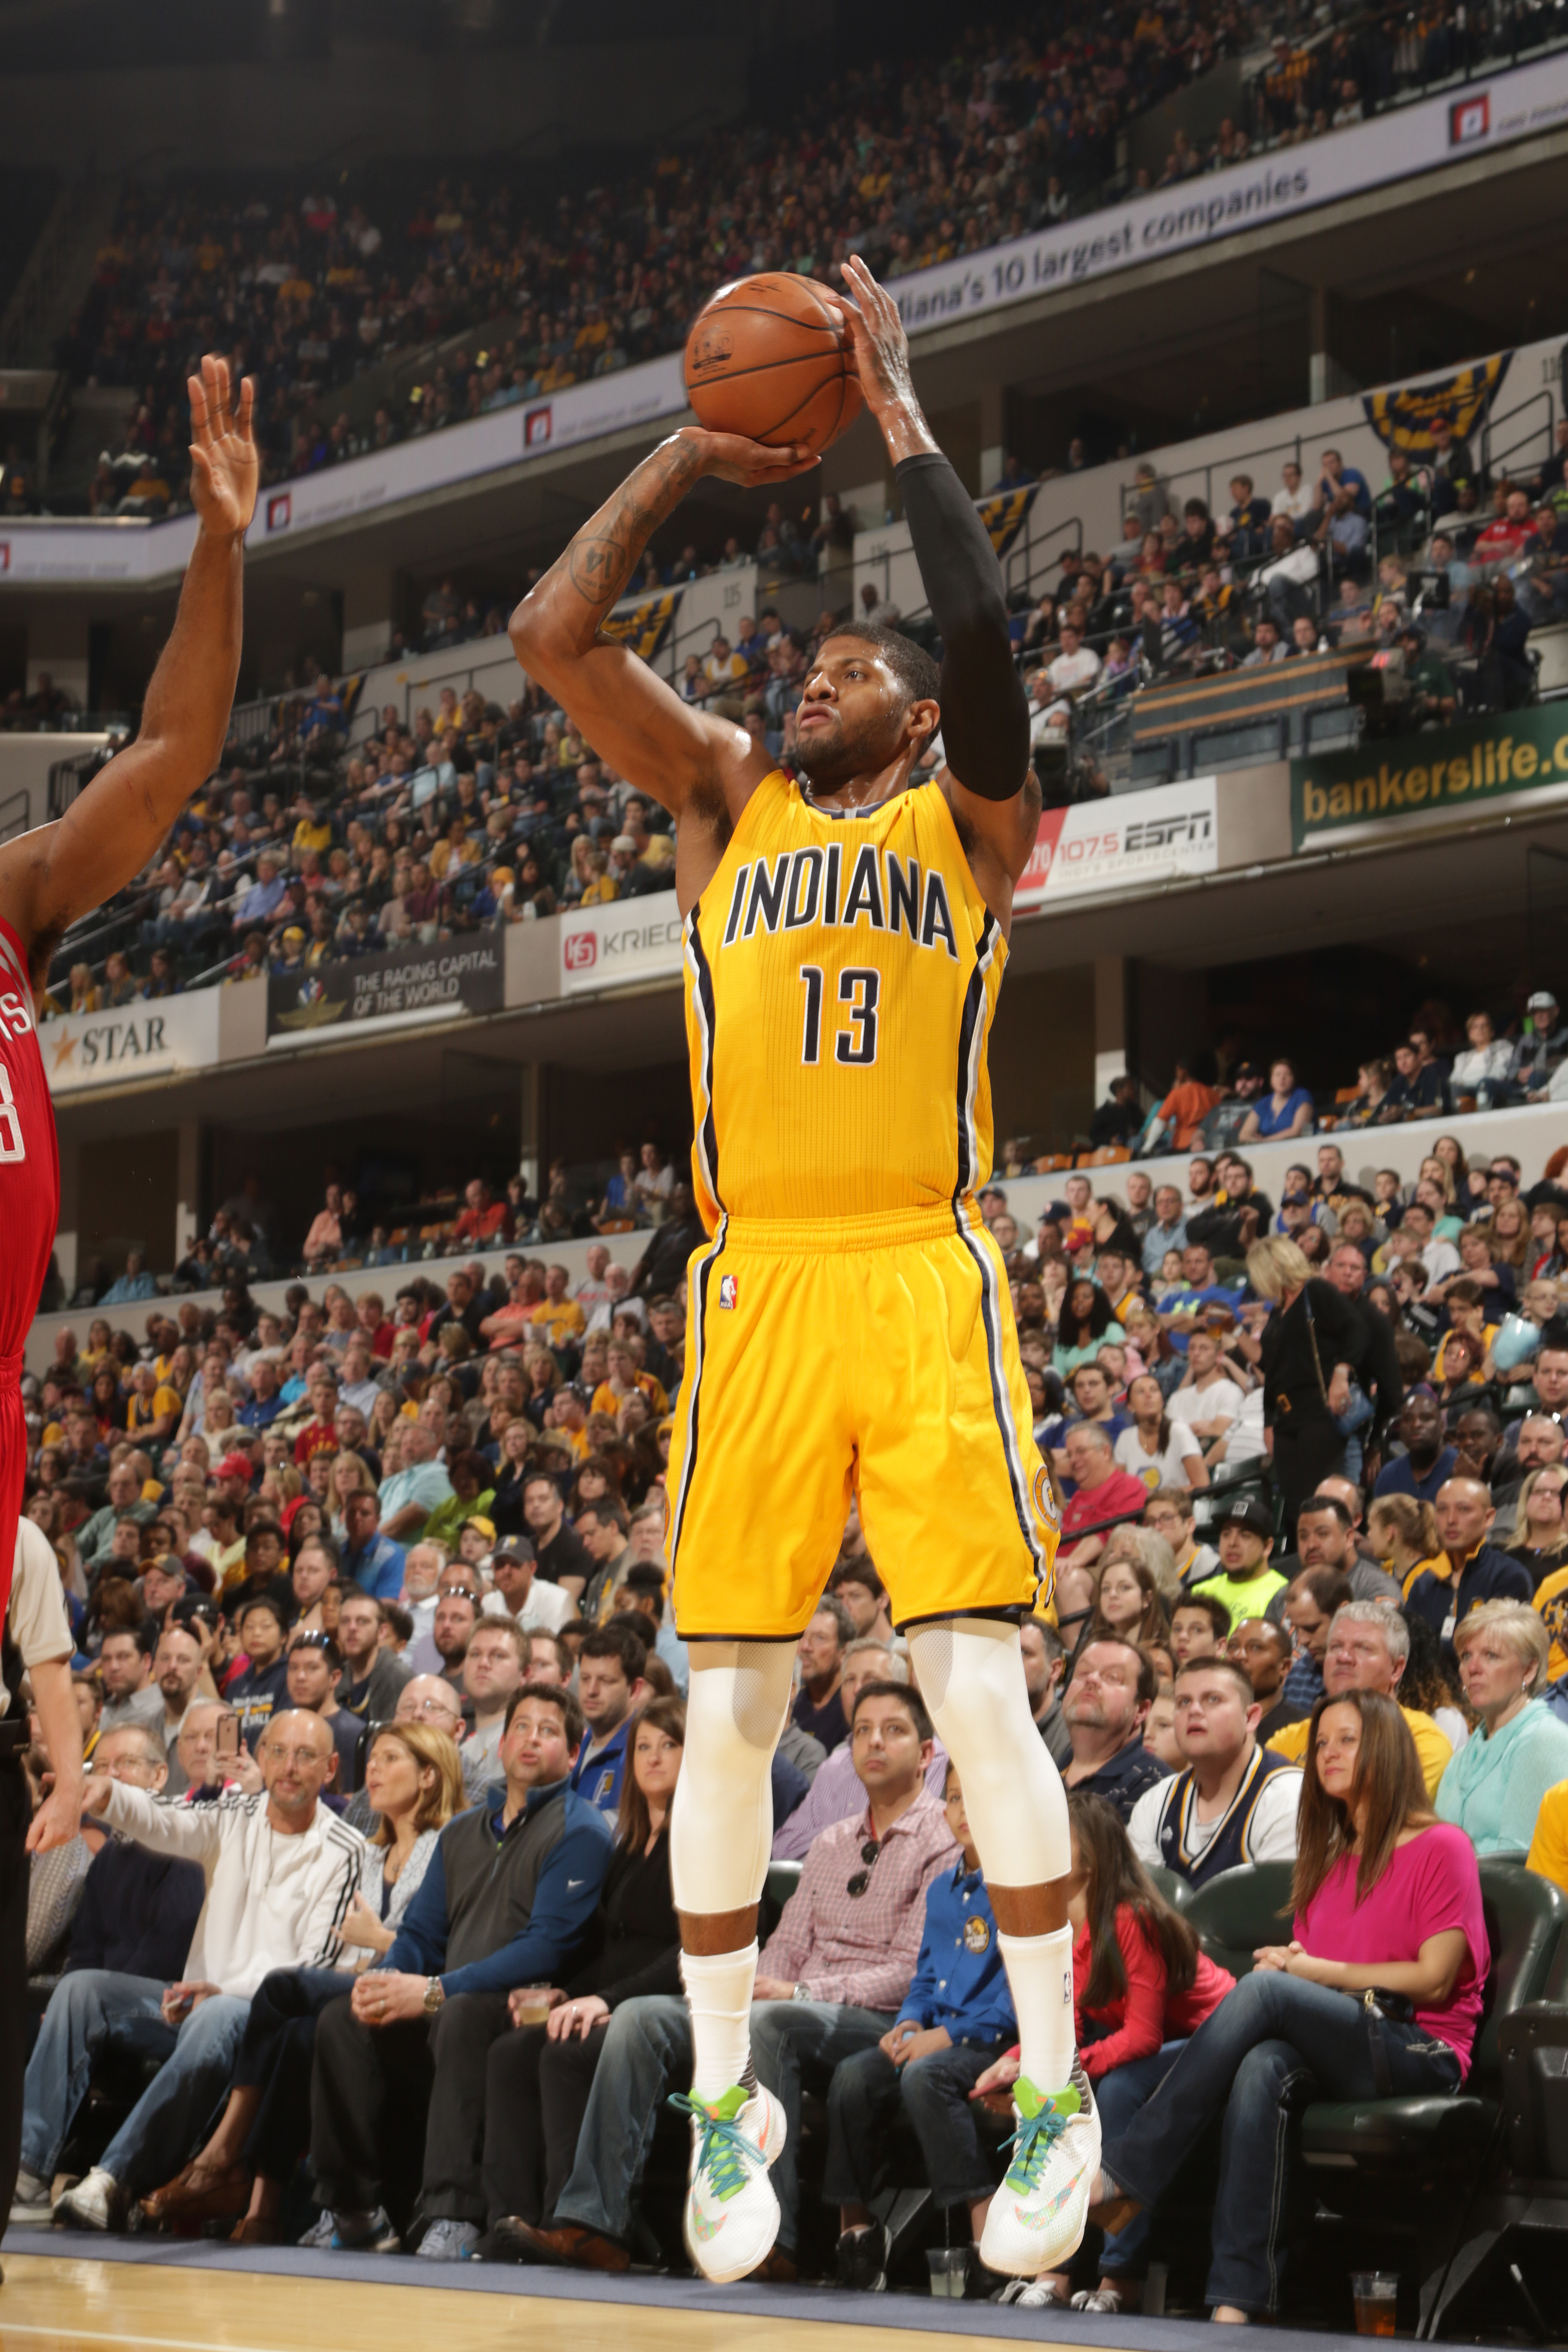 INDIANAPOLIS, IN - MARCH 27:  Paul George #13 of the Indiana Pacers shoots the ball against the Houston Rockets on March 27, 2016 at Bankers Life Fieldhouse in Indianapolis, Indiana. (Photo by Ron Hoskins/NBAE via Getty Images)